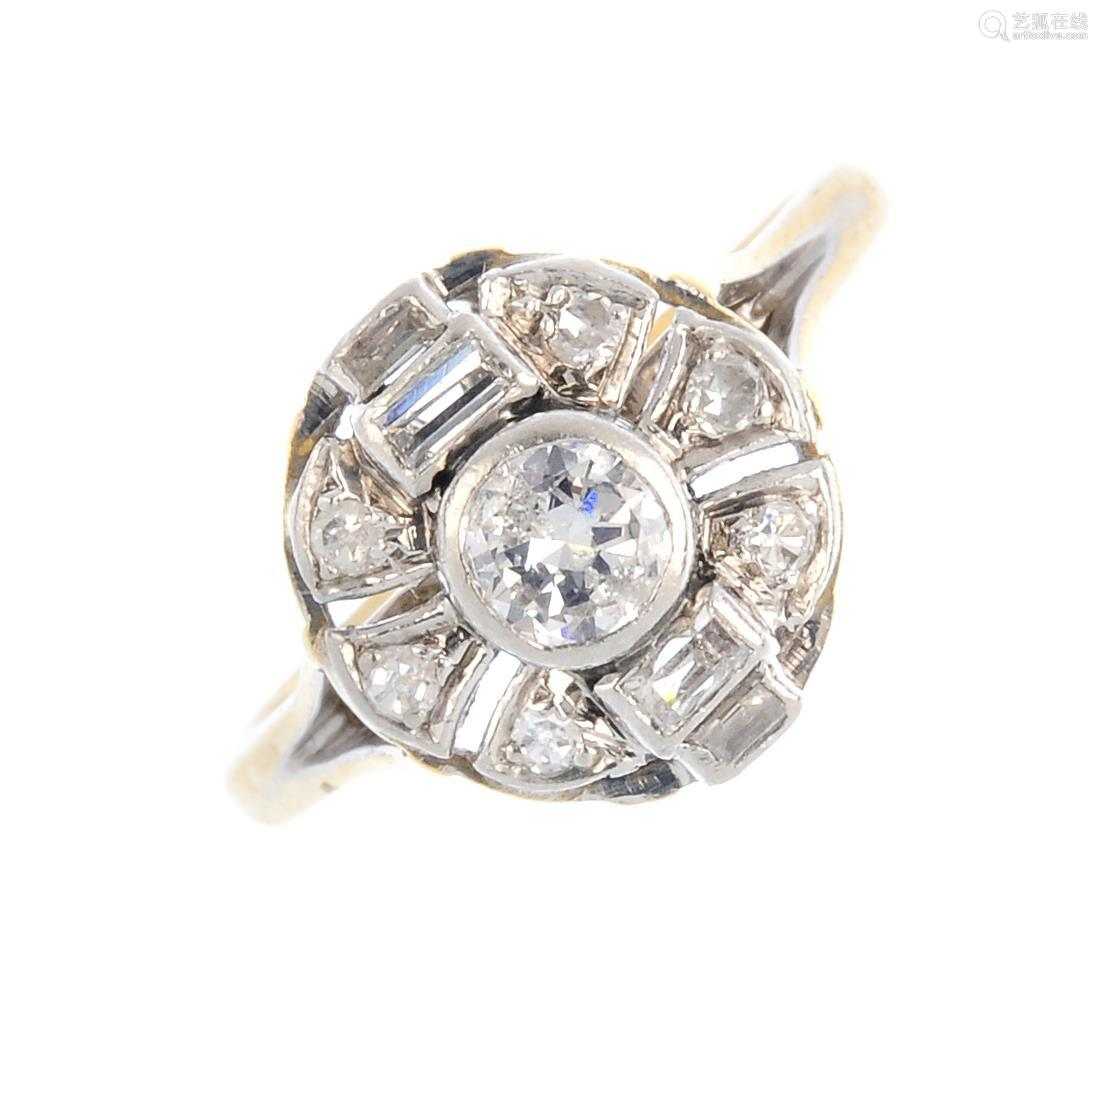 A diamond cluster ring. The brilliant-cut diamond, with baguette-cut diamond sides and single-cut